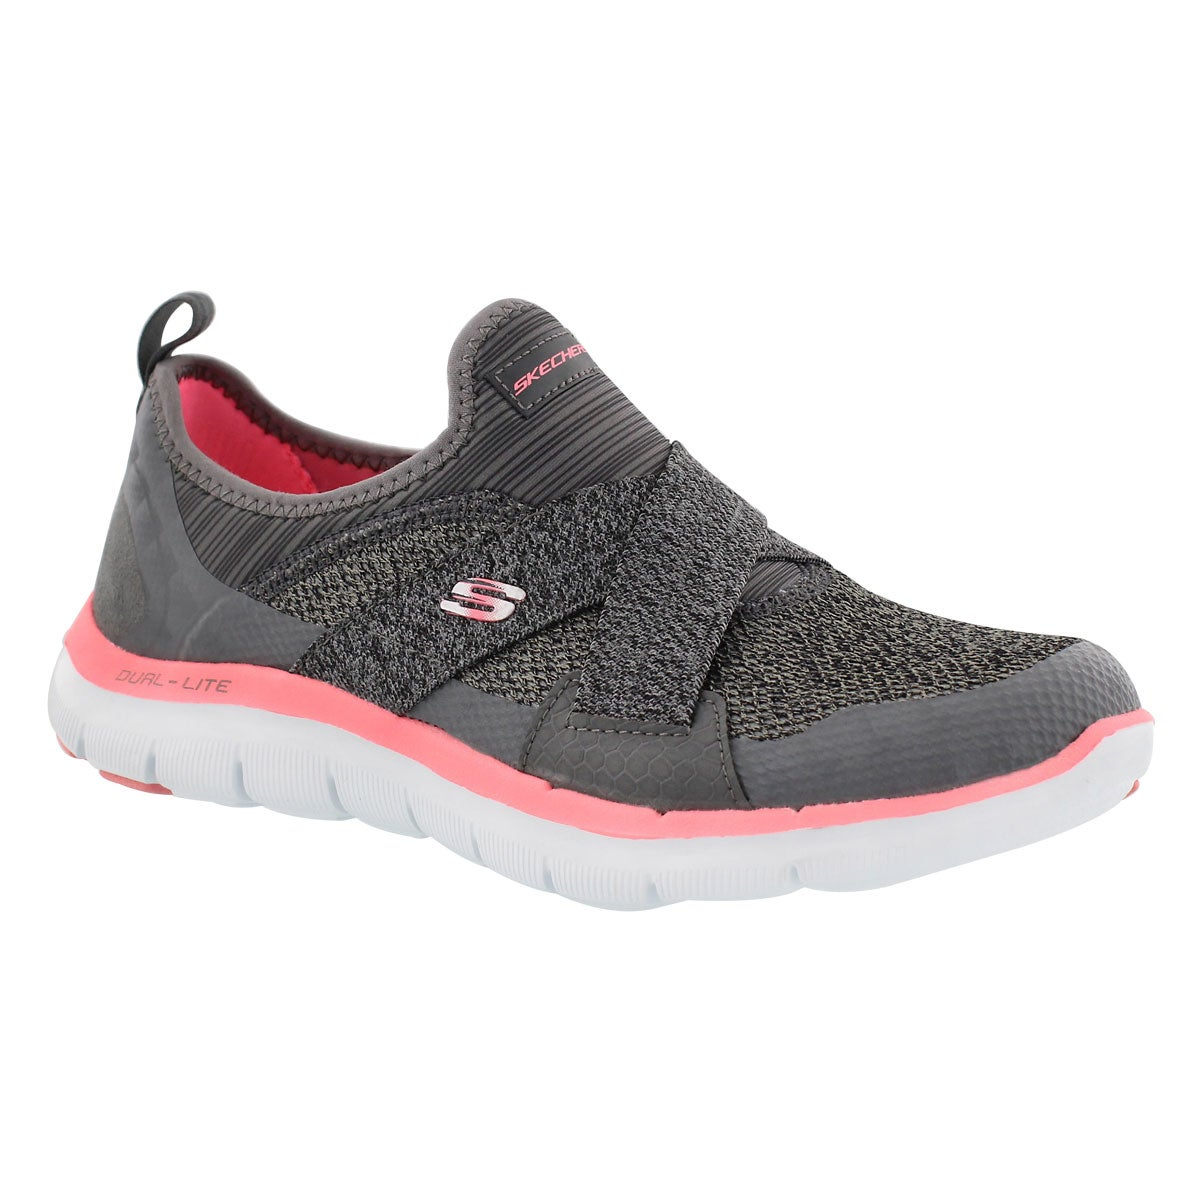 Women's FLEX APPEAL 2.0 NEW IMAGE grey sneakers